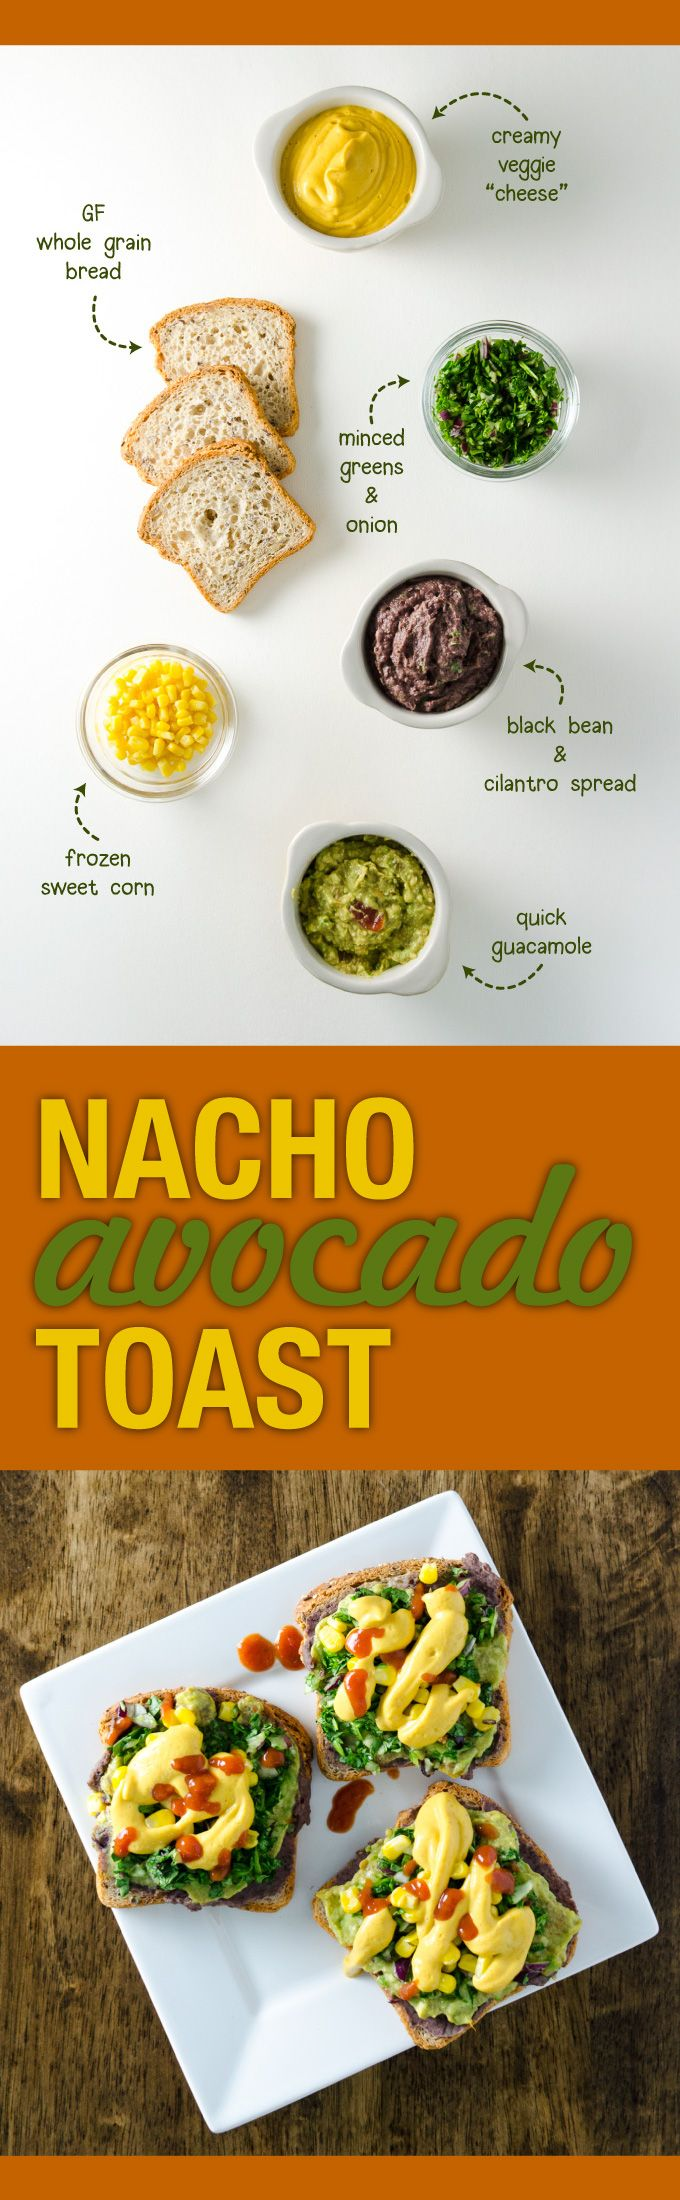 "Nacho Avocado Toast - a delicious vegan, gluten free, ""cheesy"" recipe that's quick and easy - makes a perfect breakfast, lunch or snack 